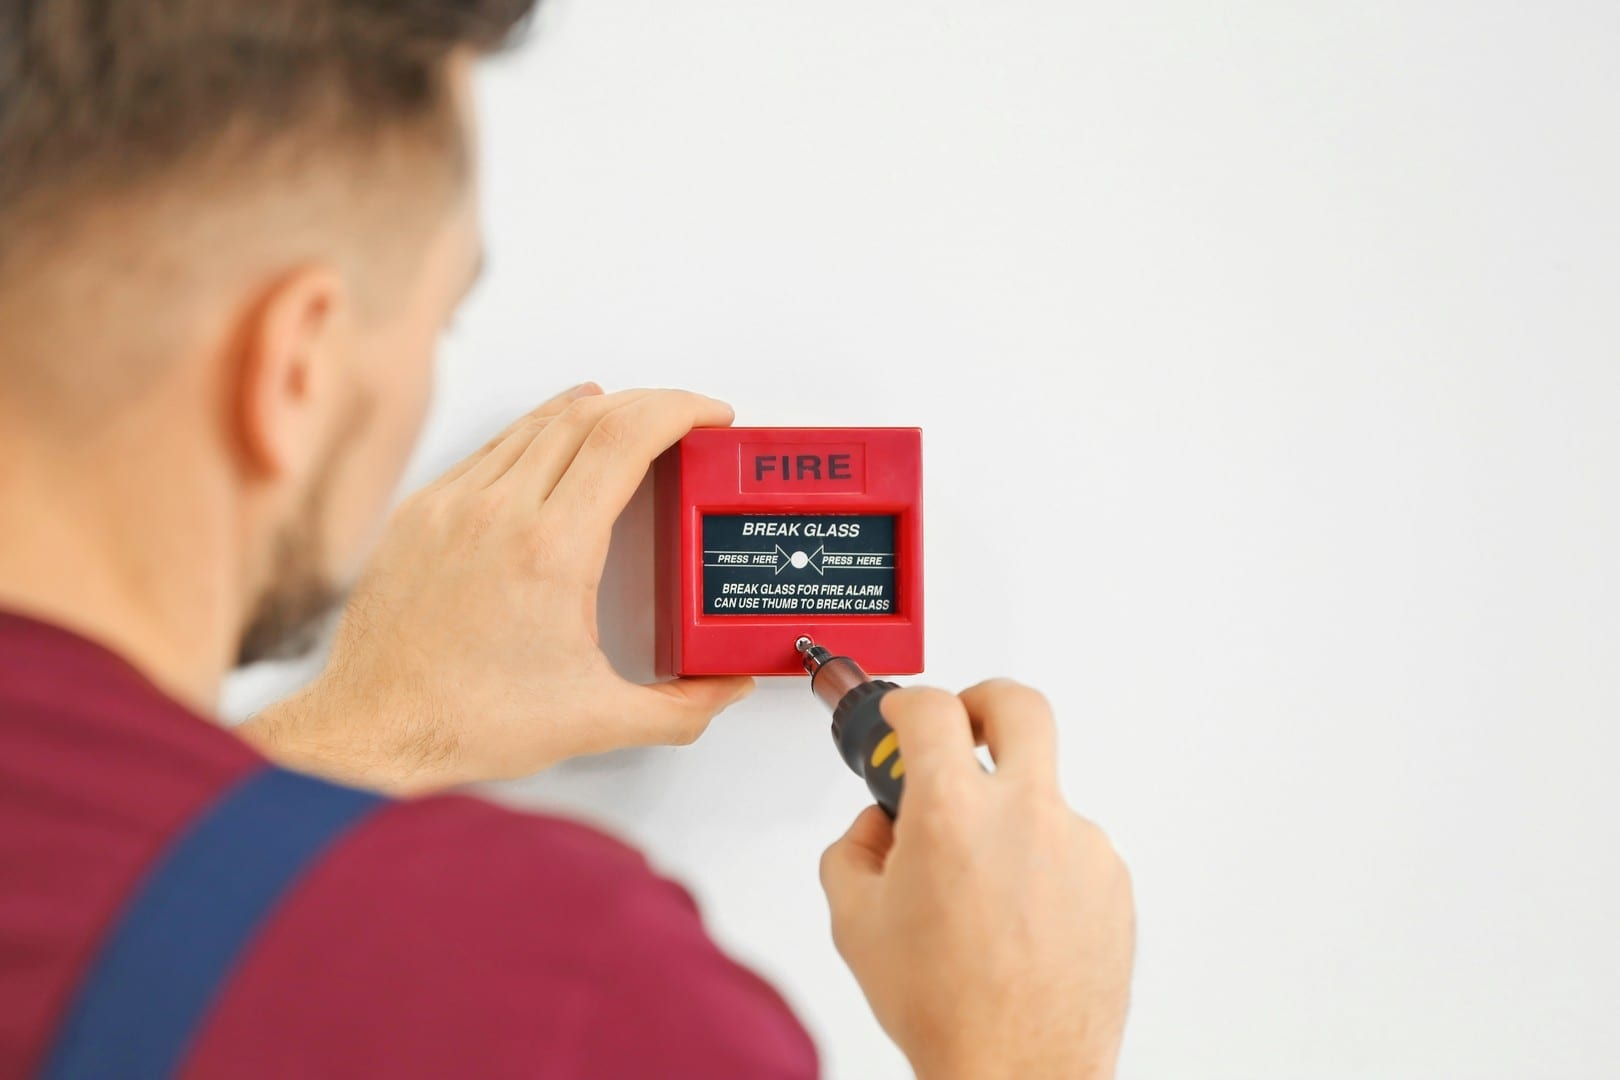 Fire Alarm Systems in Manchester